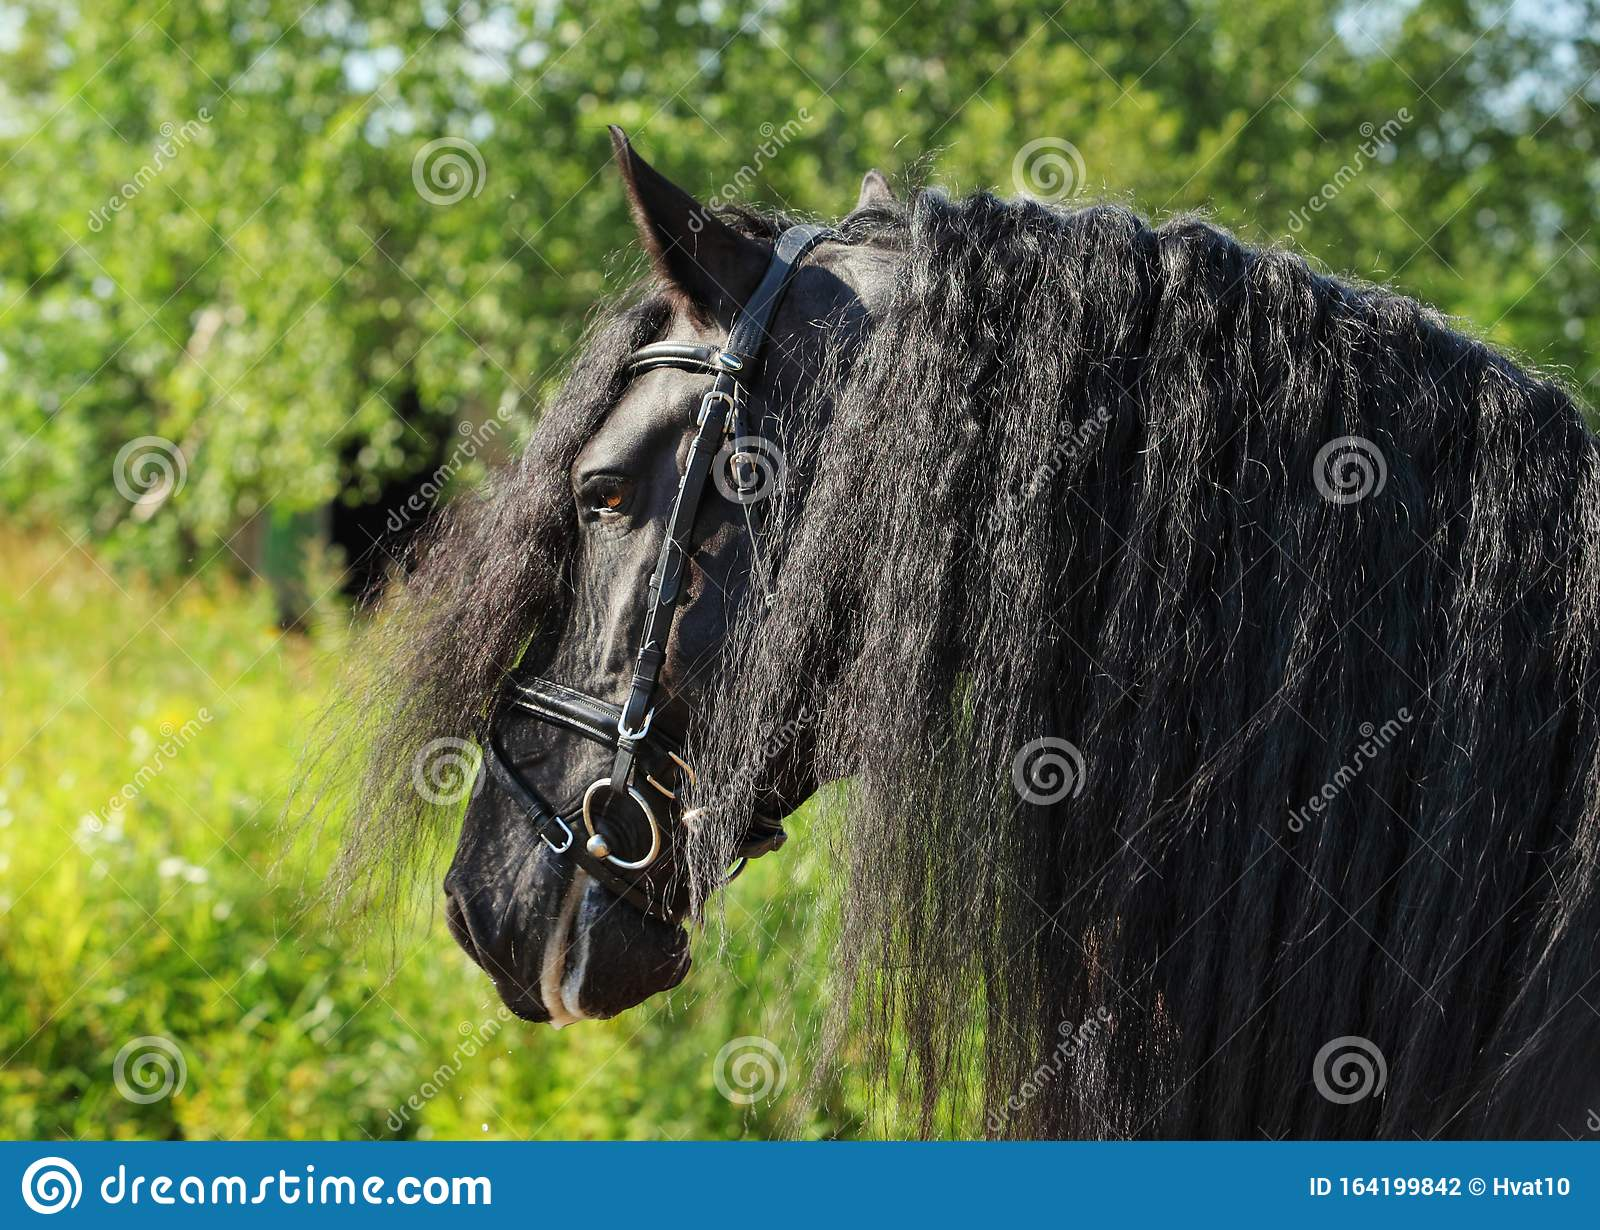 Close Up Portrait Of Black Friesian Draft Horse Stock Photo Image Of Closeup Forest 164199842